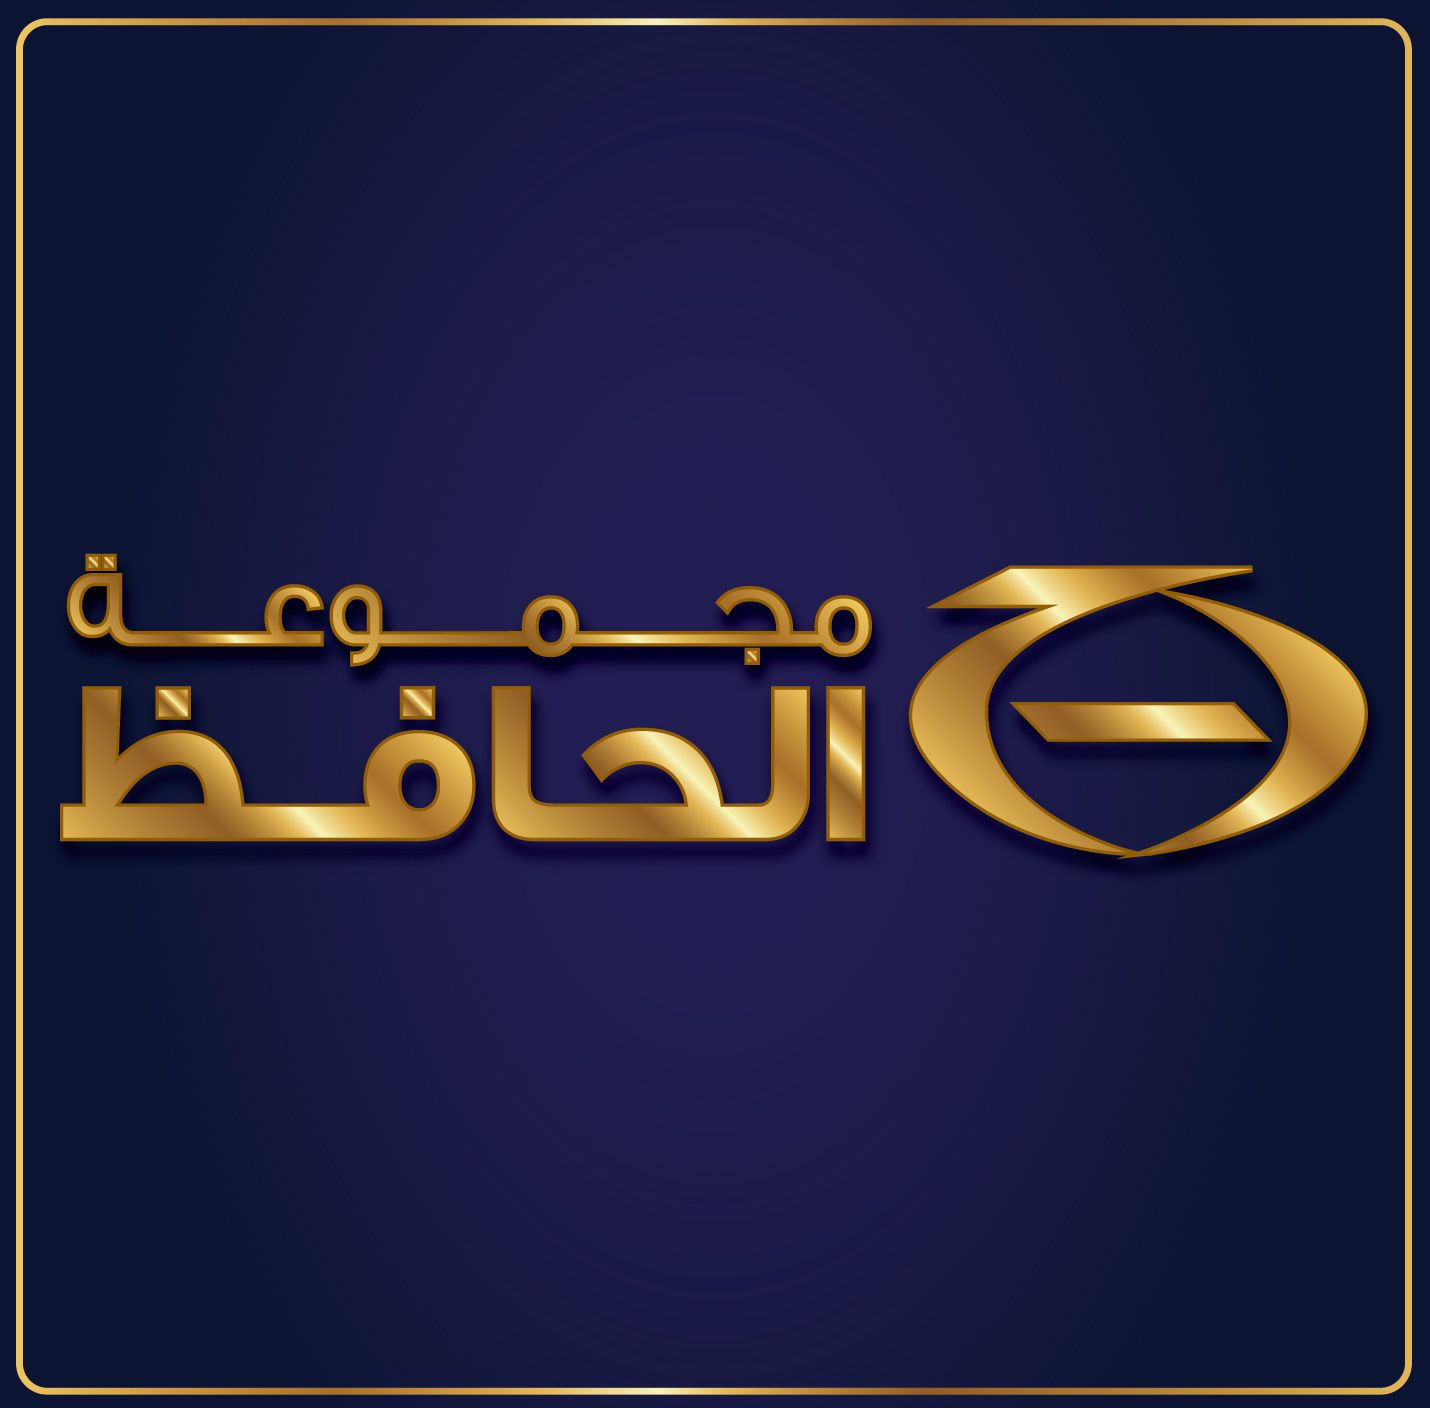 About Alhafez Group since 1952